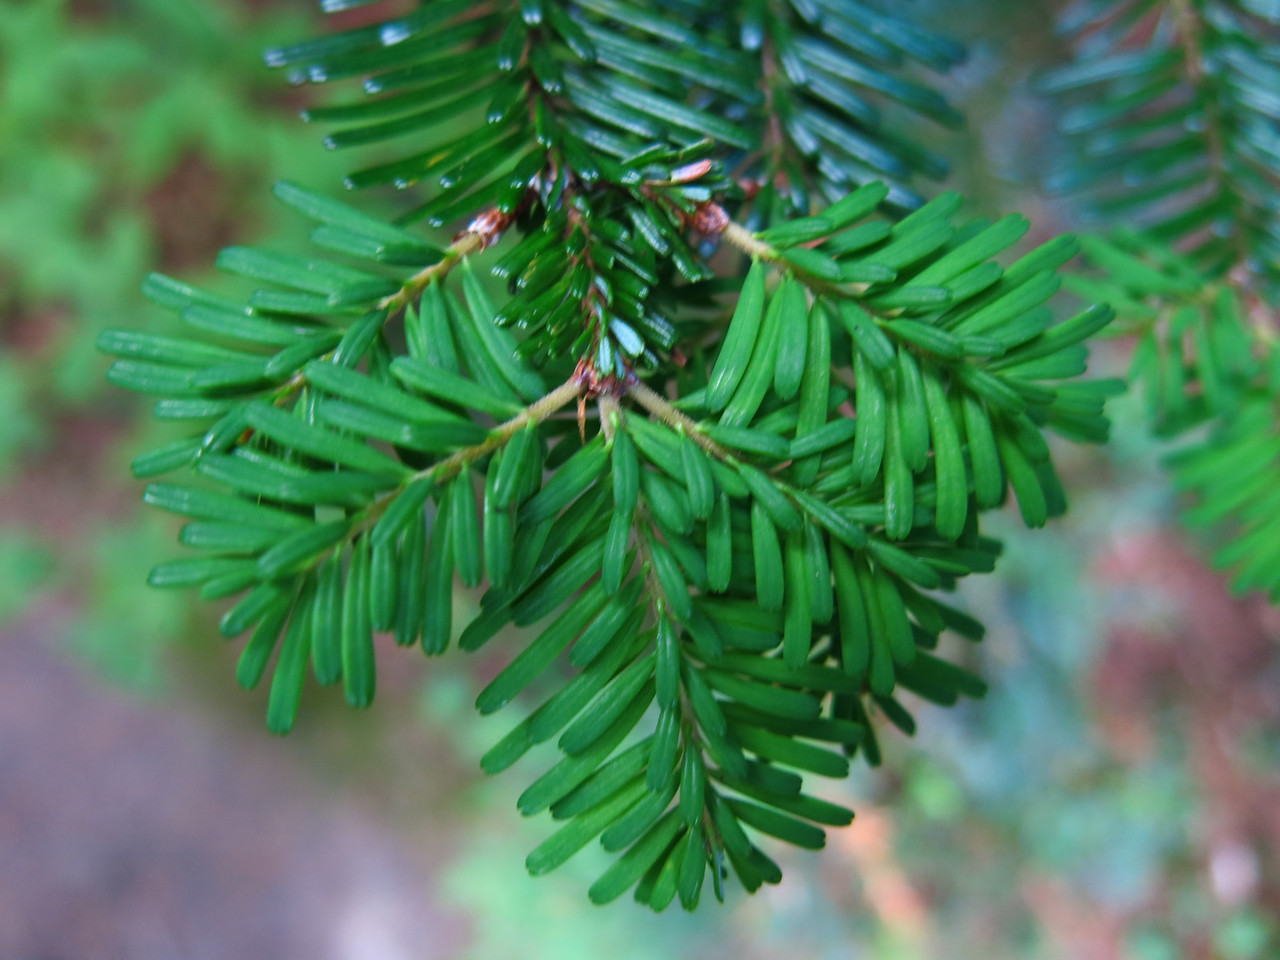 New needles at the end of an evergreen branch.